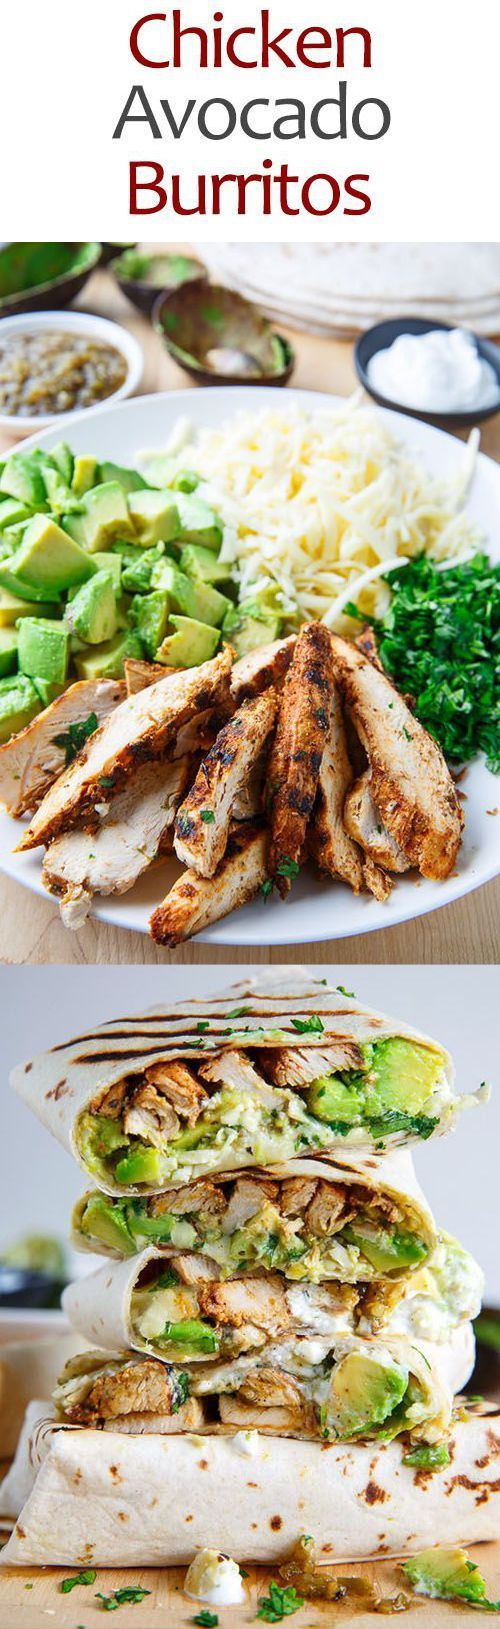 Chicken and Avocado Burritos Healthy Recipes – avocado, food, healthy, recipes -…